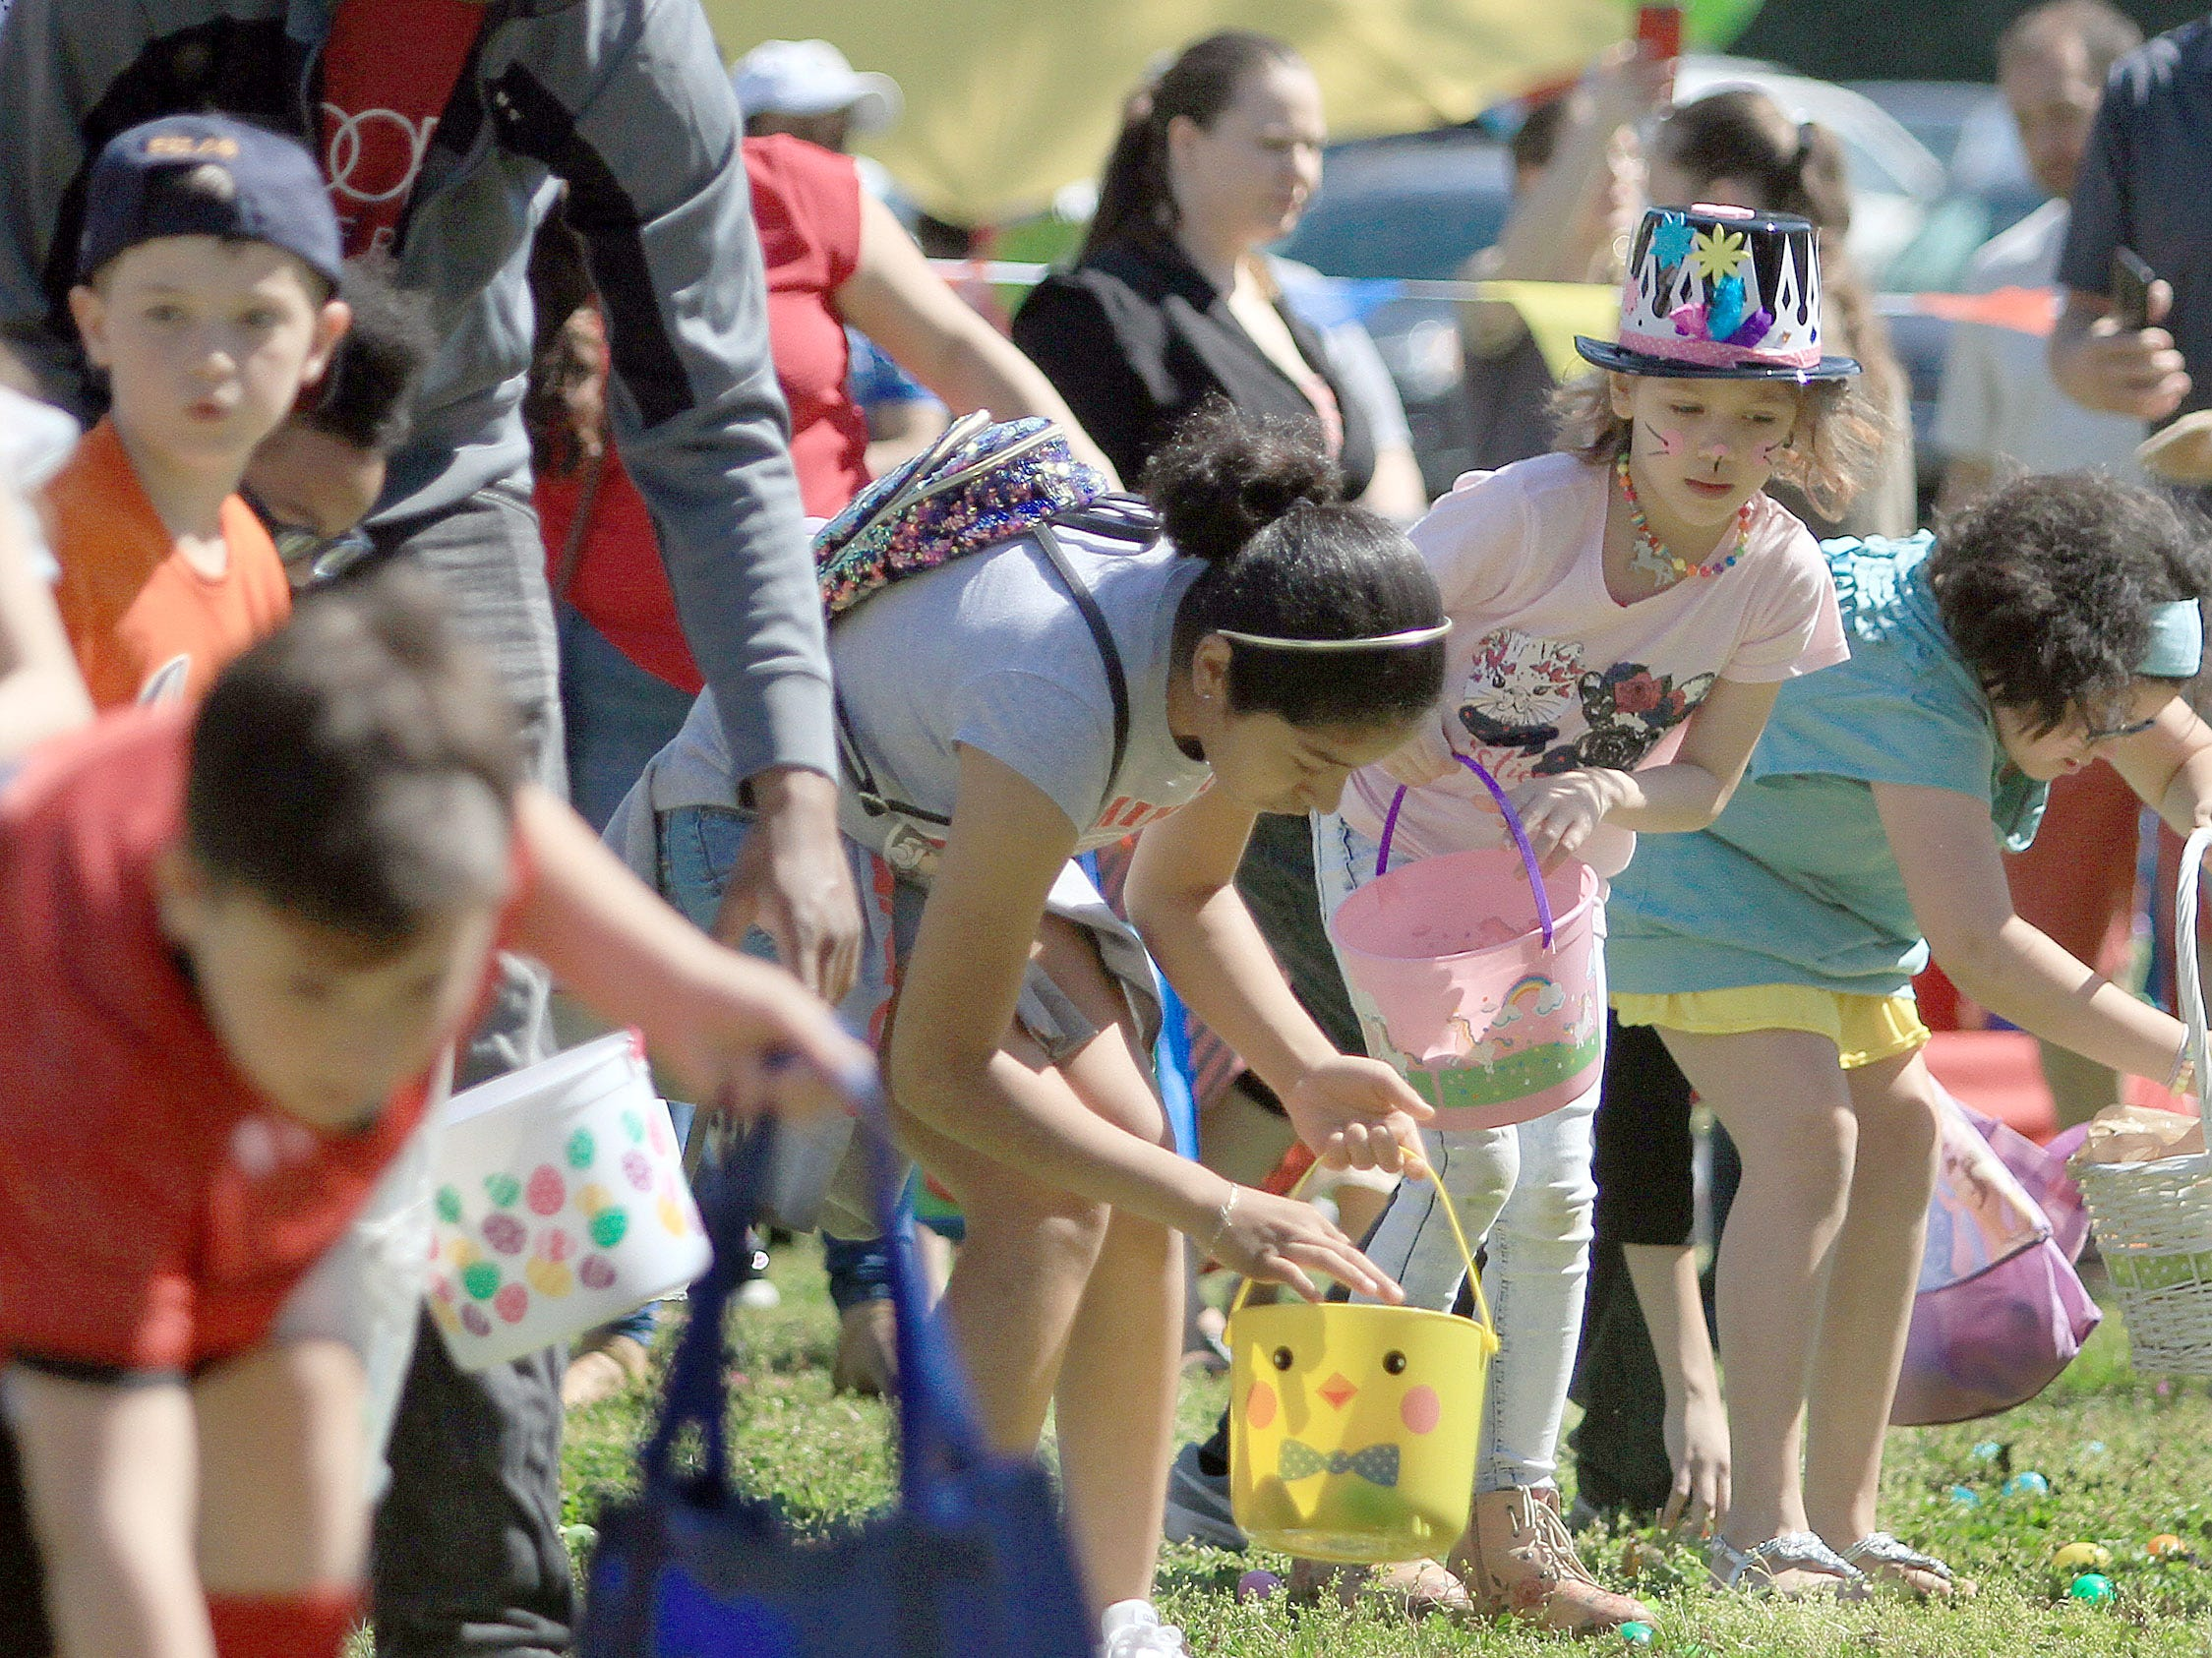 Kids grab as many eggs as they can at the egg hunt at Rock Castle in Hendersonville, TN on Saturday, April 6, 2019.